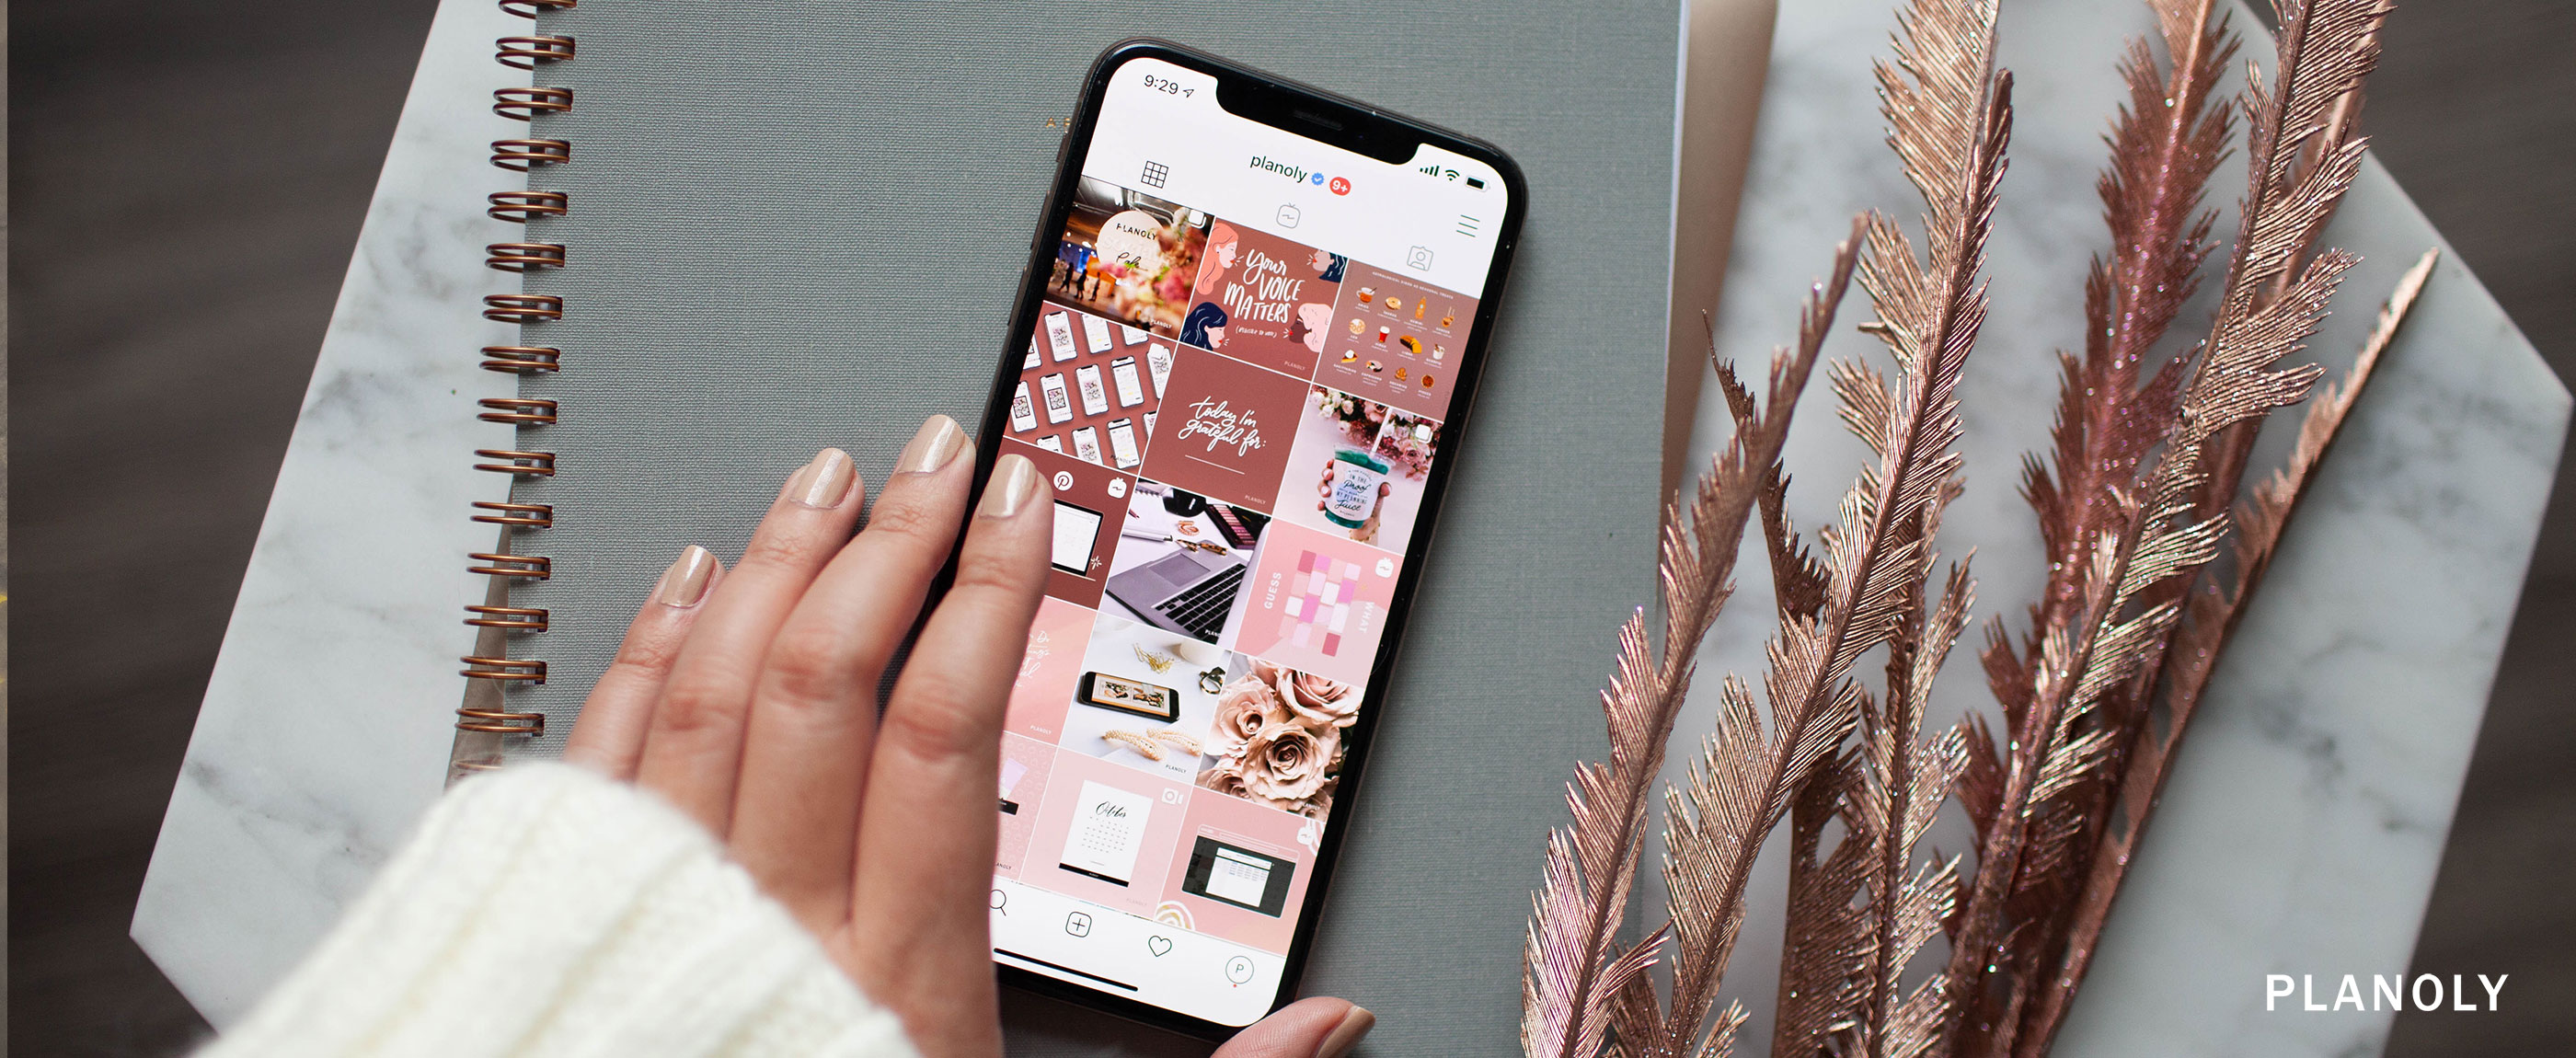 PLANOLY-Blog-Post-New-Grid-New-You-Creative-Ways-to-Revamp-Your-Instagram-for-the-New-Year-Banner